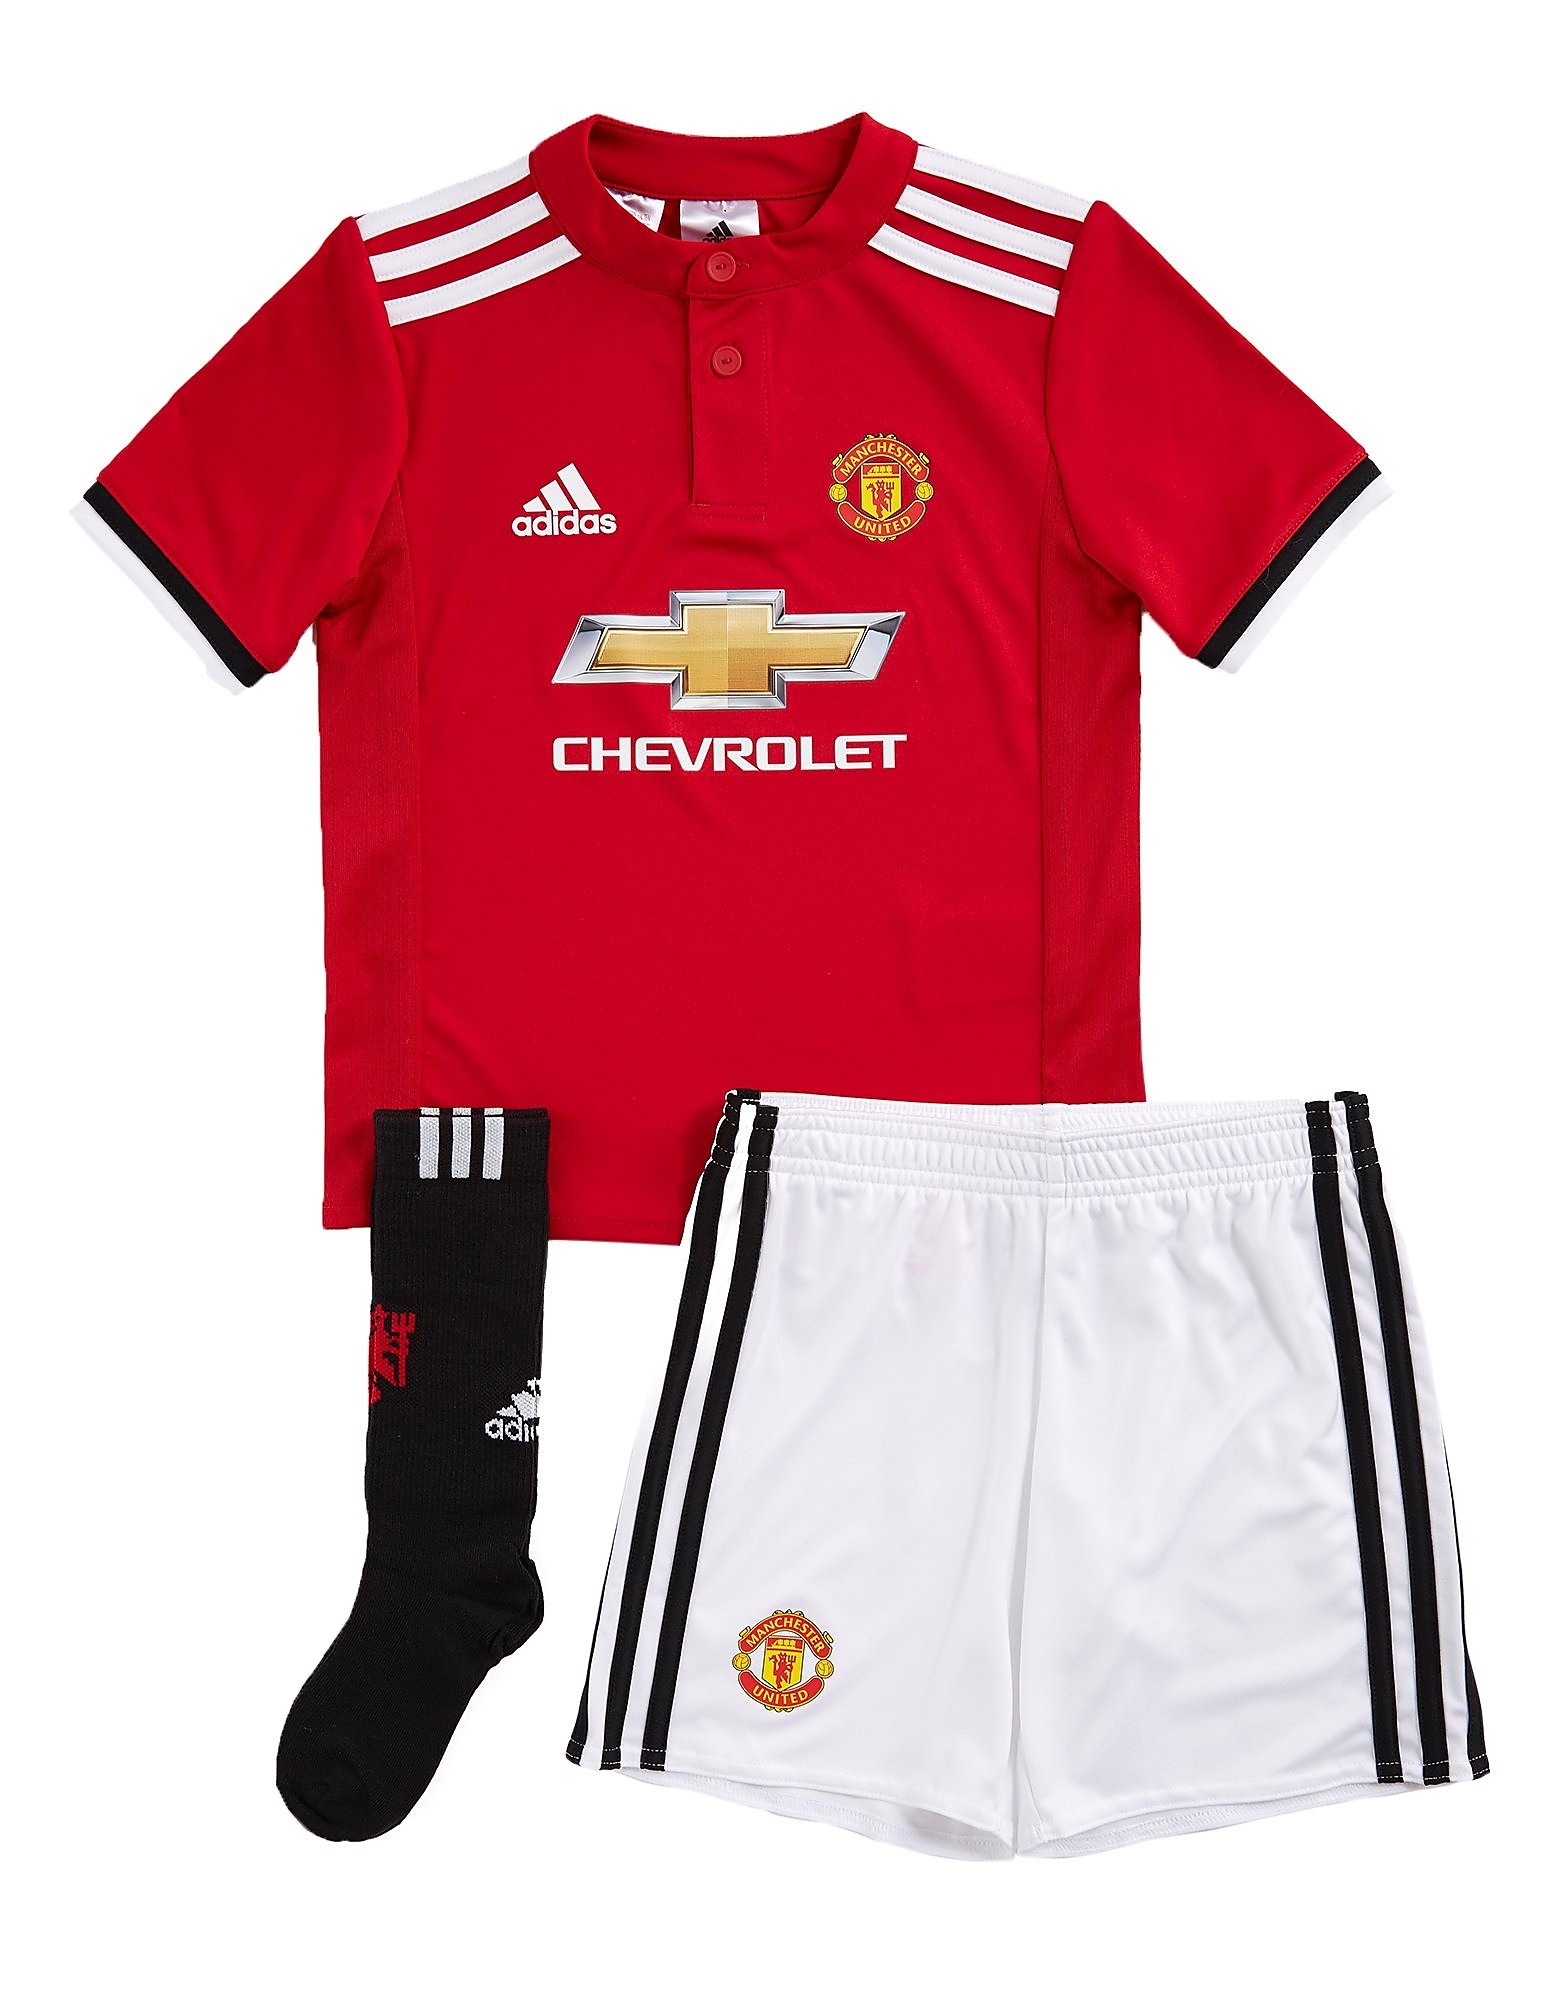 adidas Manchester United 2017/18 Home Kit Childen